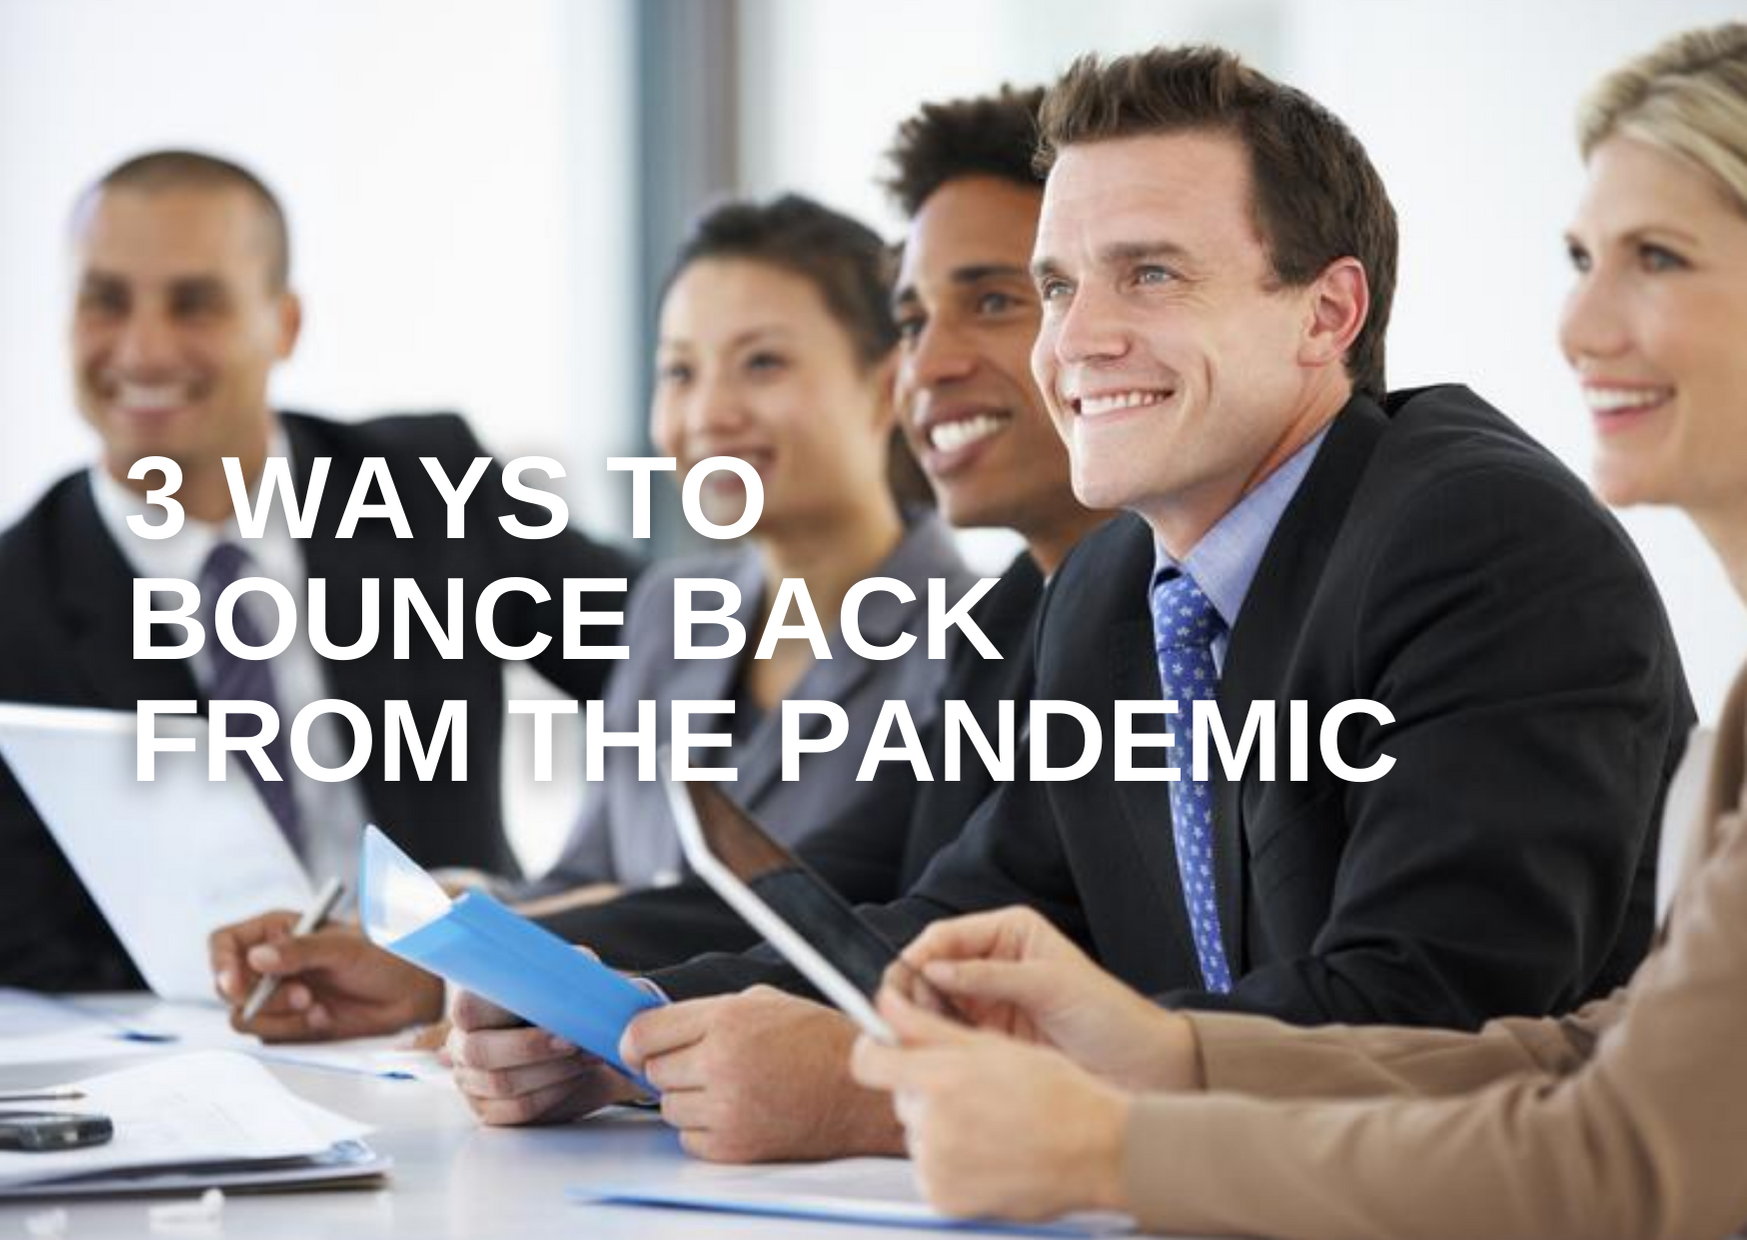 Three ways to bounce back from the pandemic